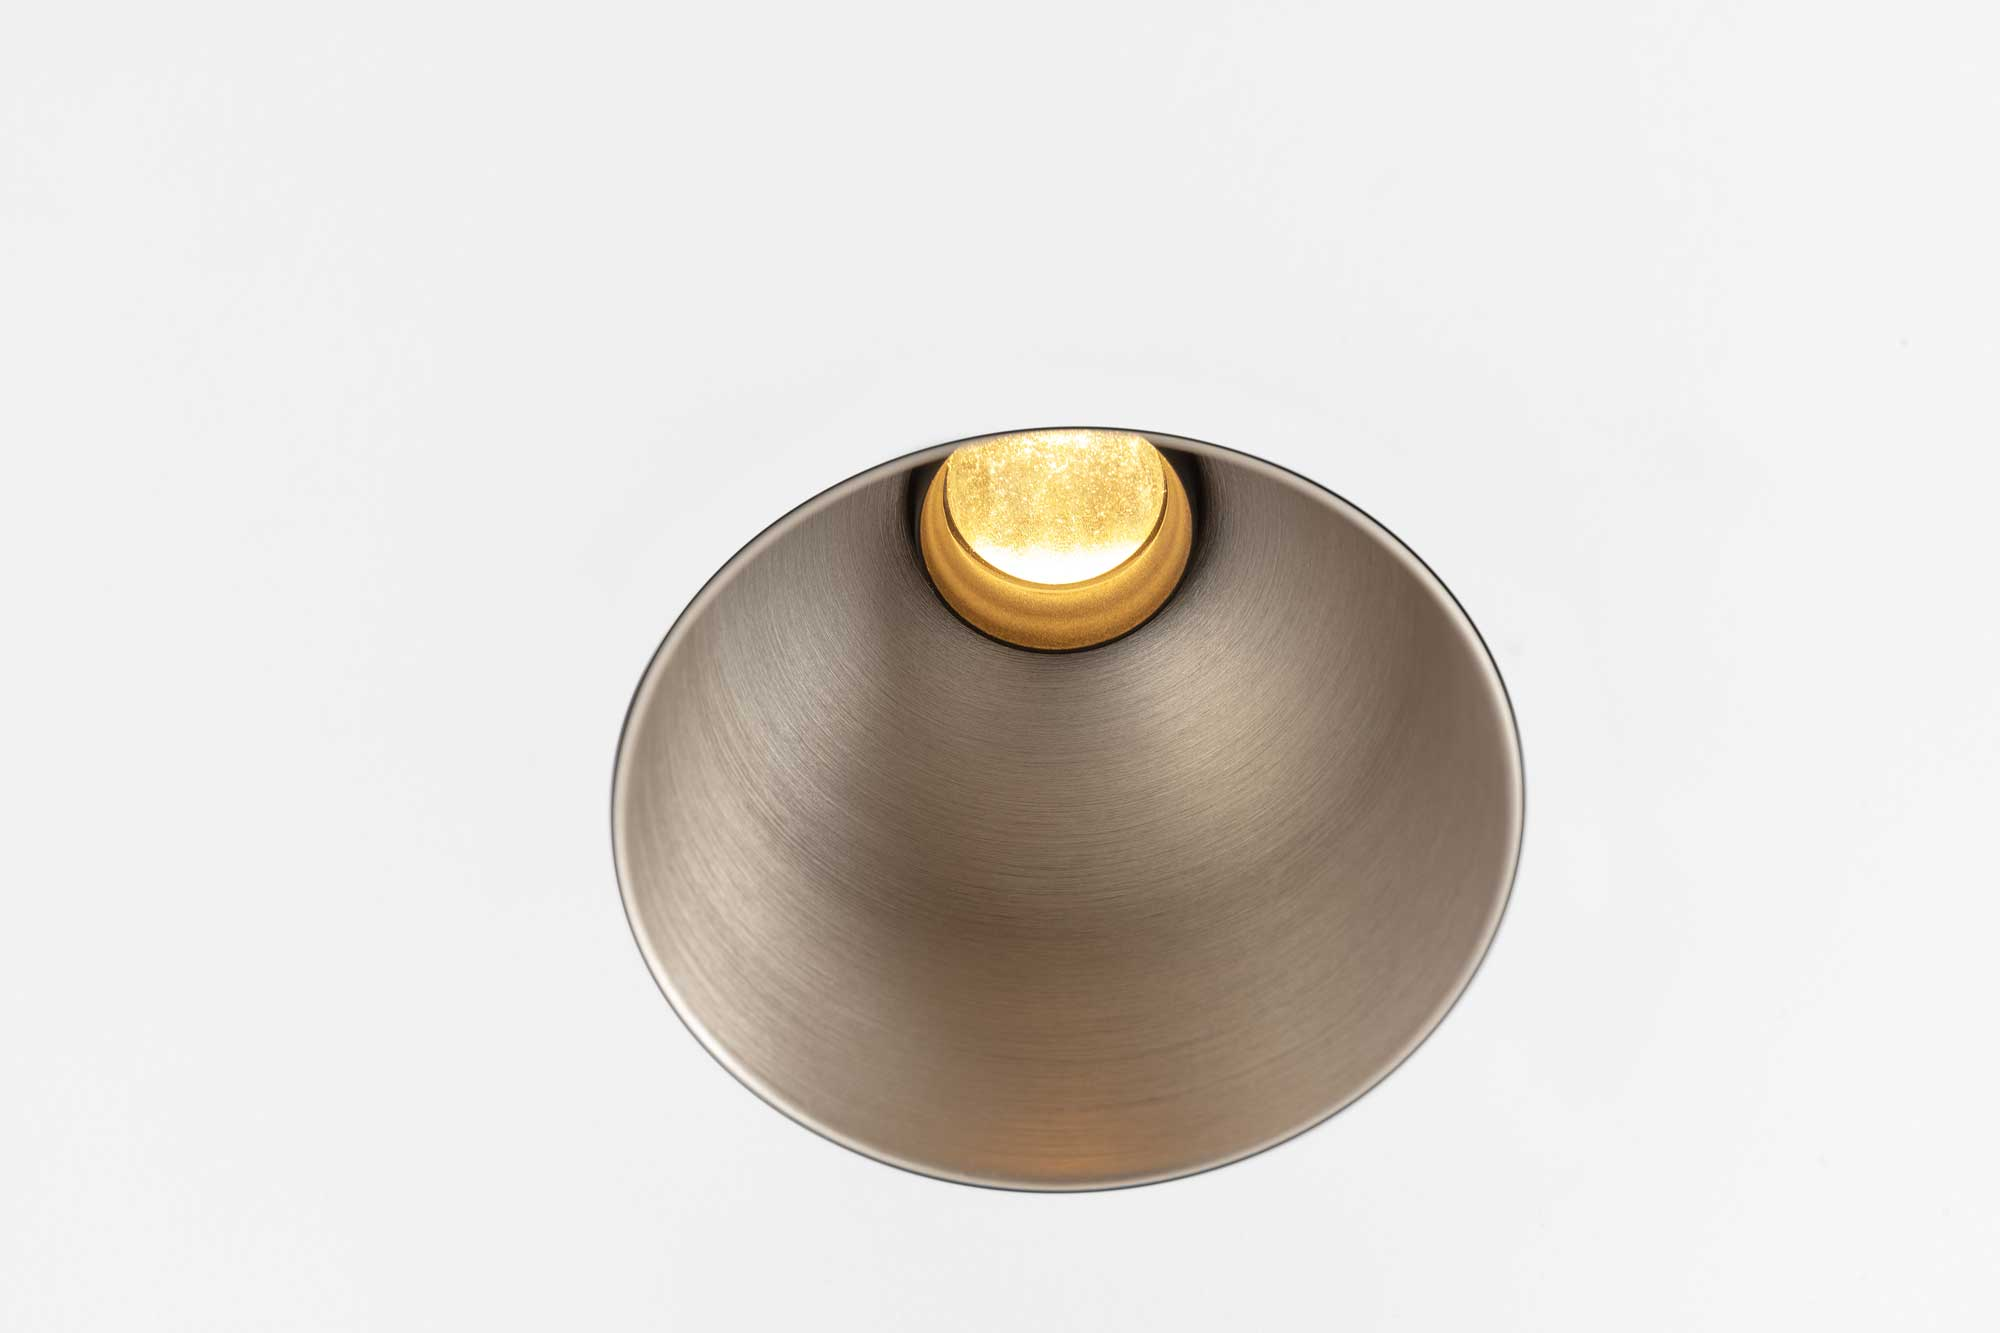 THIMBLE-70-TRIMLESS_LED_ANOSILVERBRONZE_05_LR